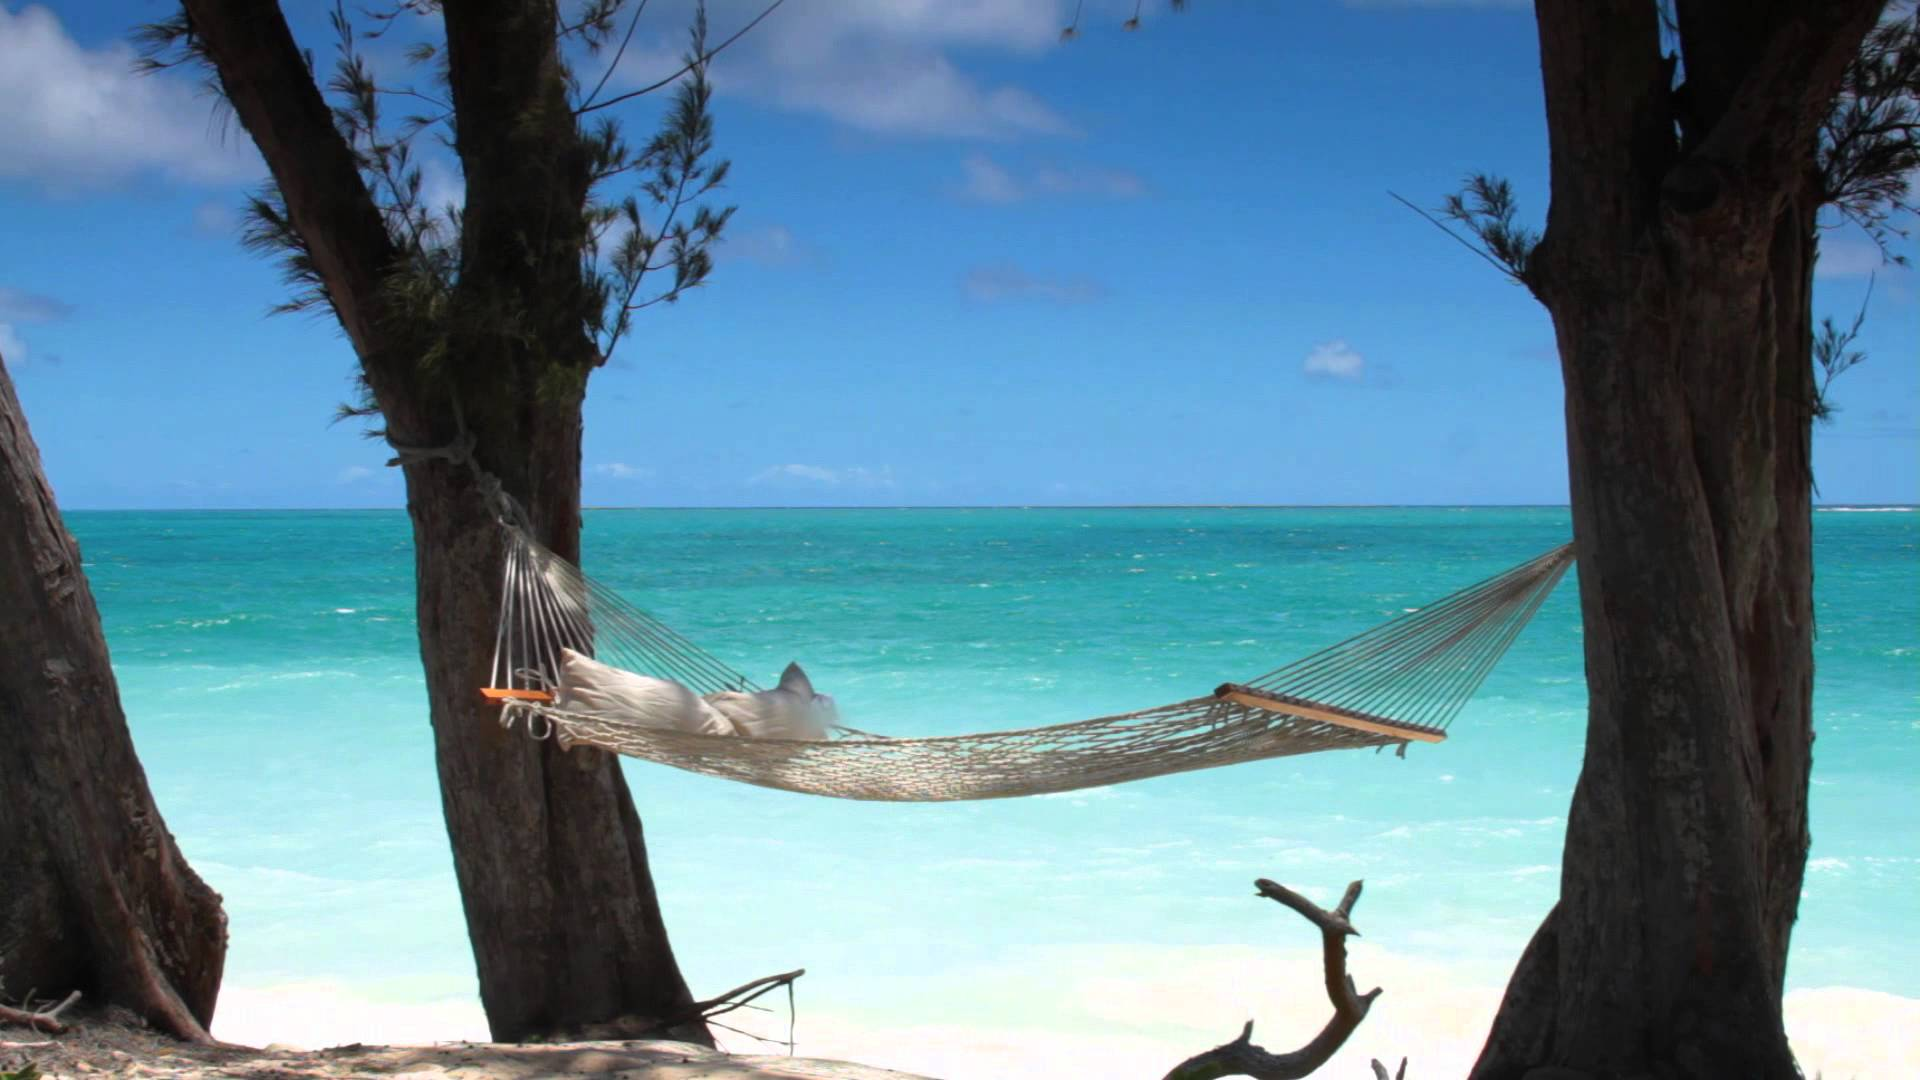 Hammock Escape at Waimanalo Beach in Oahu - YouTube